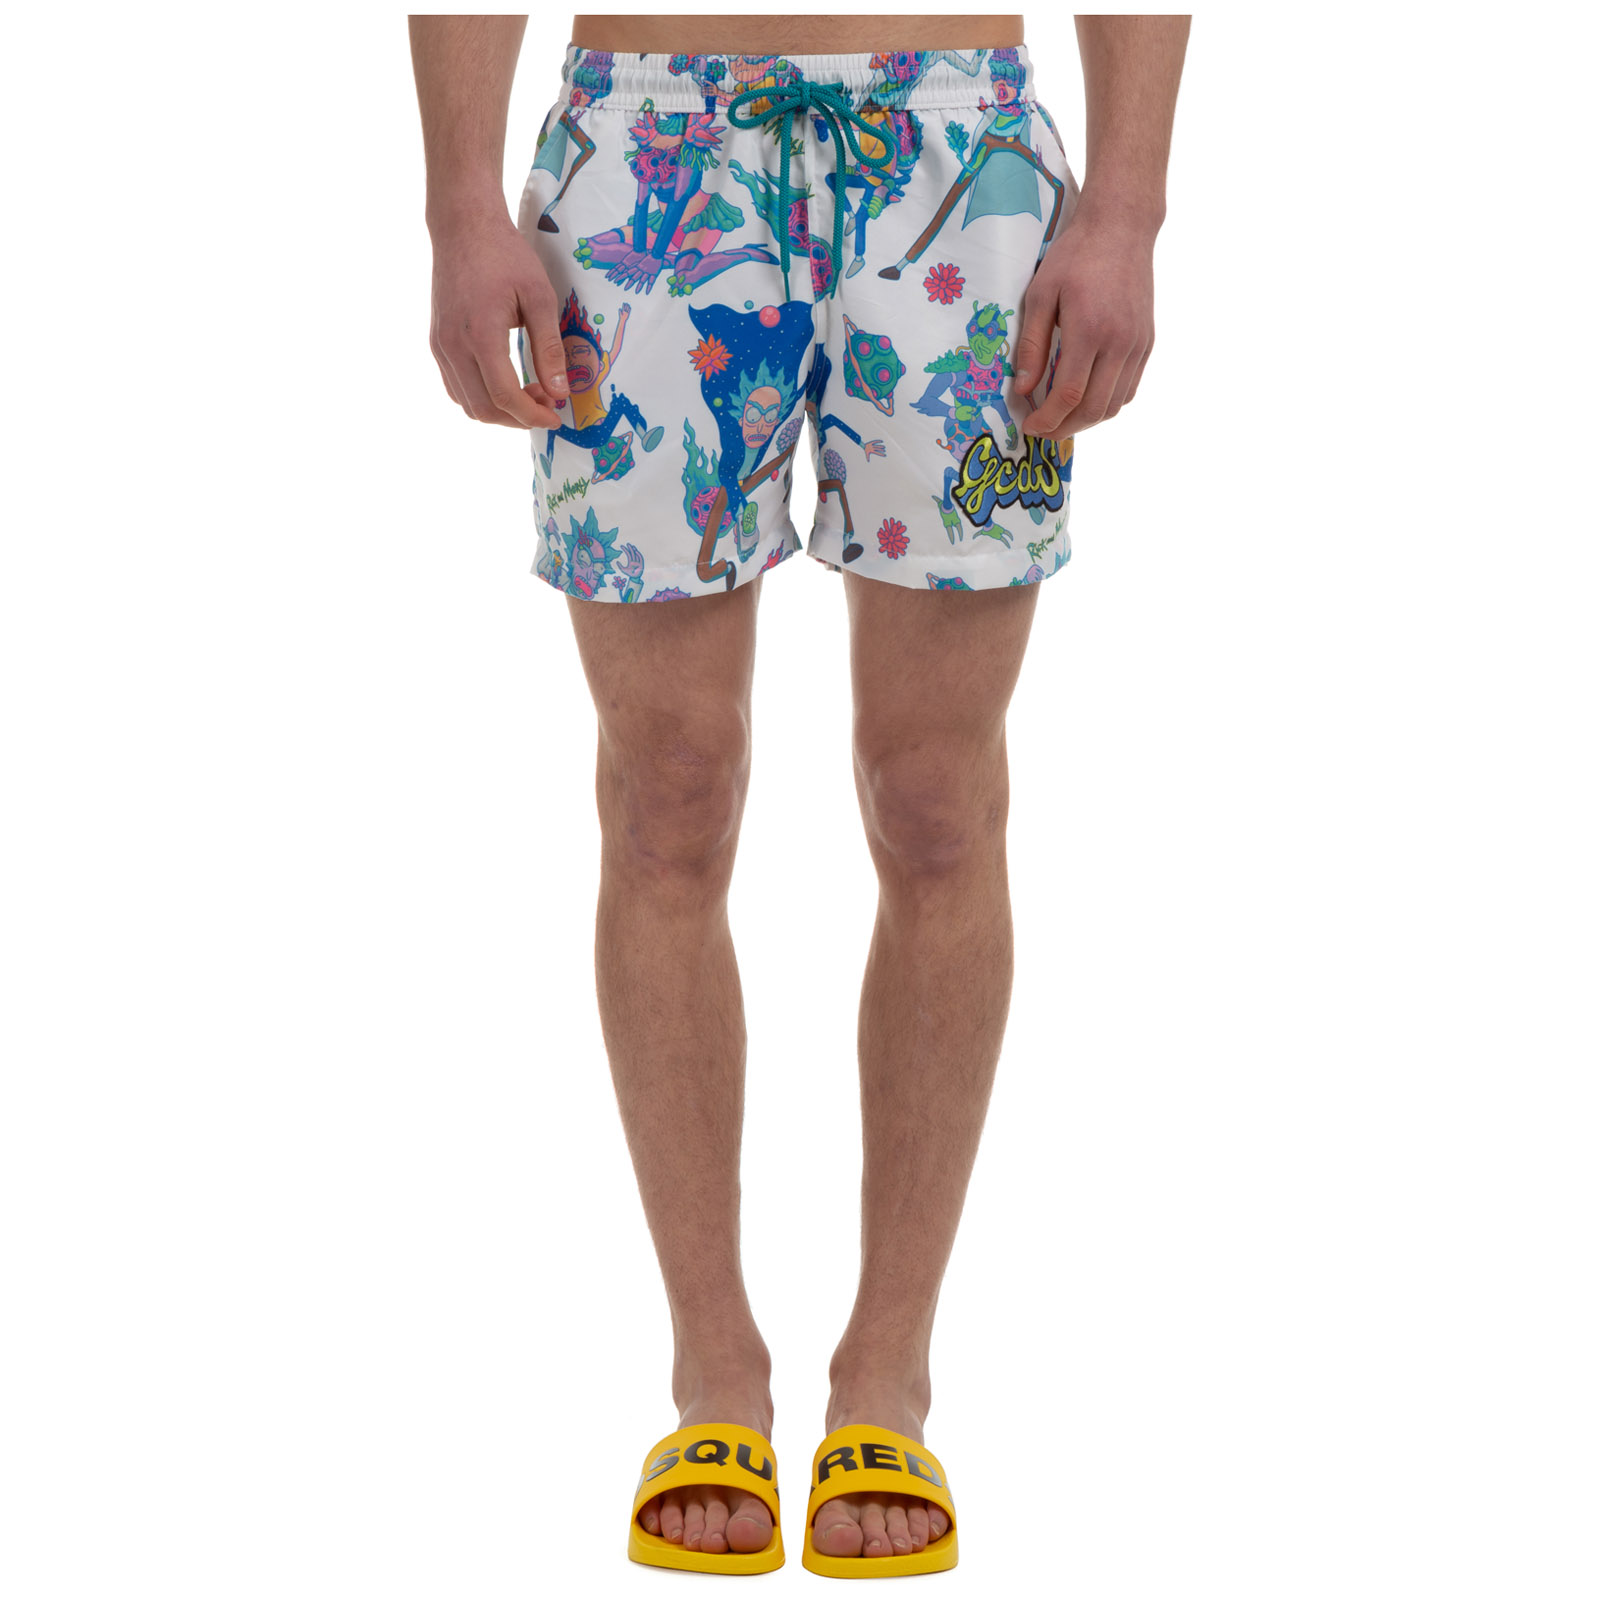 Gcds Swimtrunks MEN'S BOXER SWIMSUIT BATHING TRUNKS SWIMMING SUIT RICK&MORTY